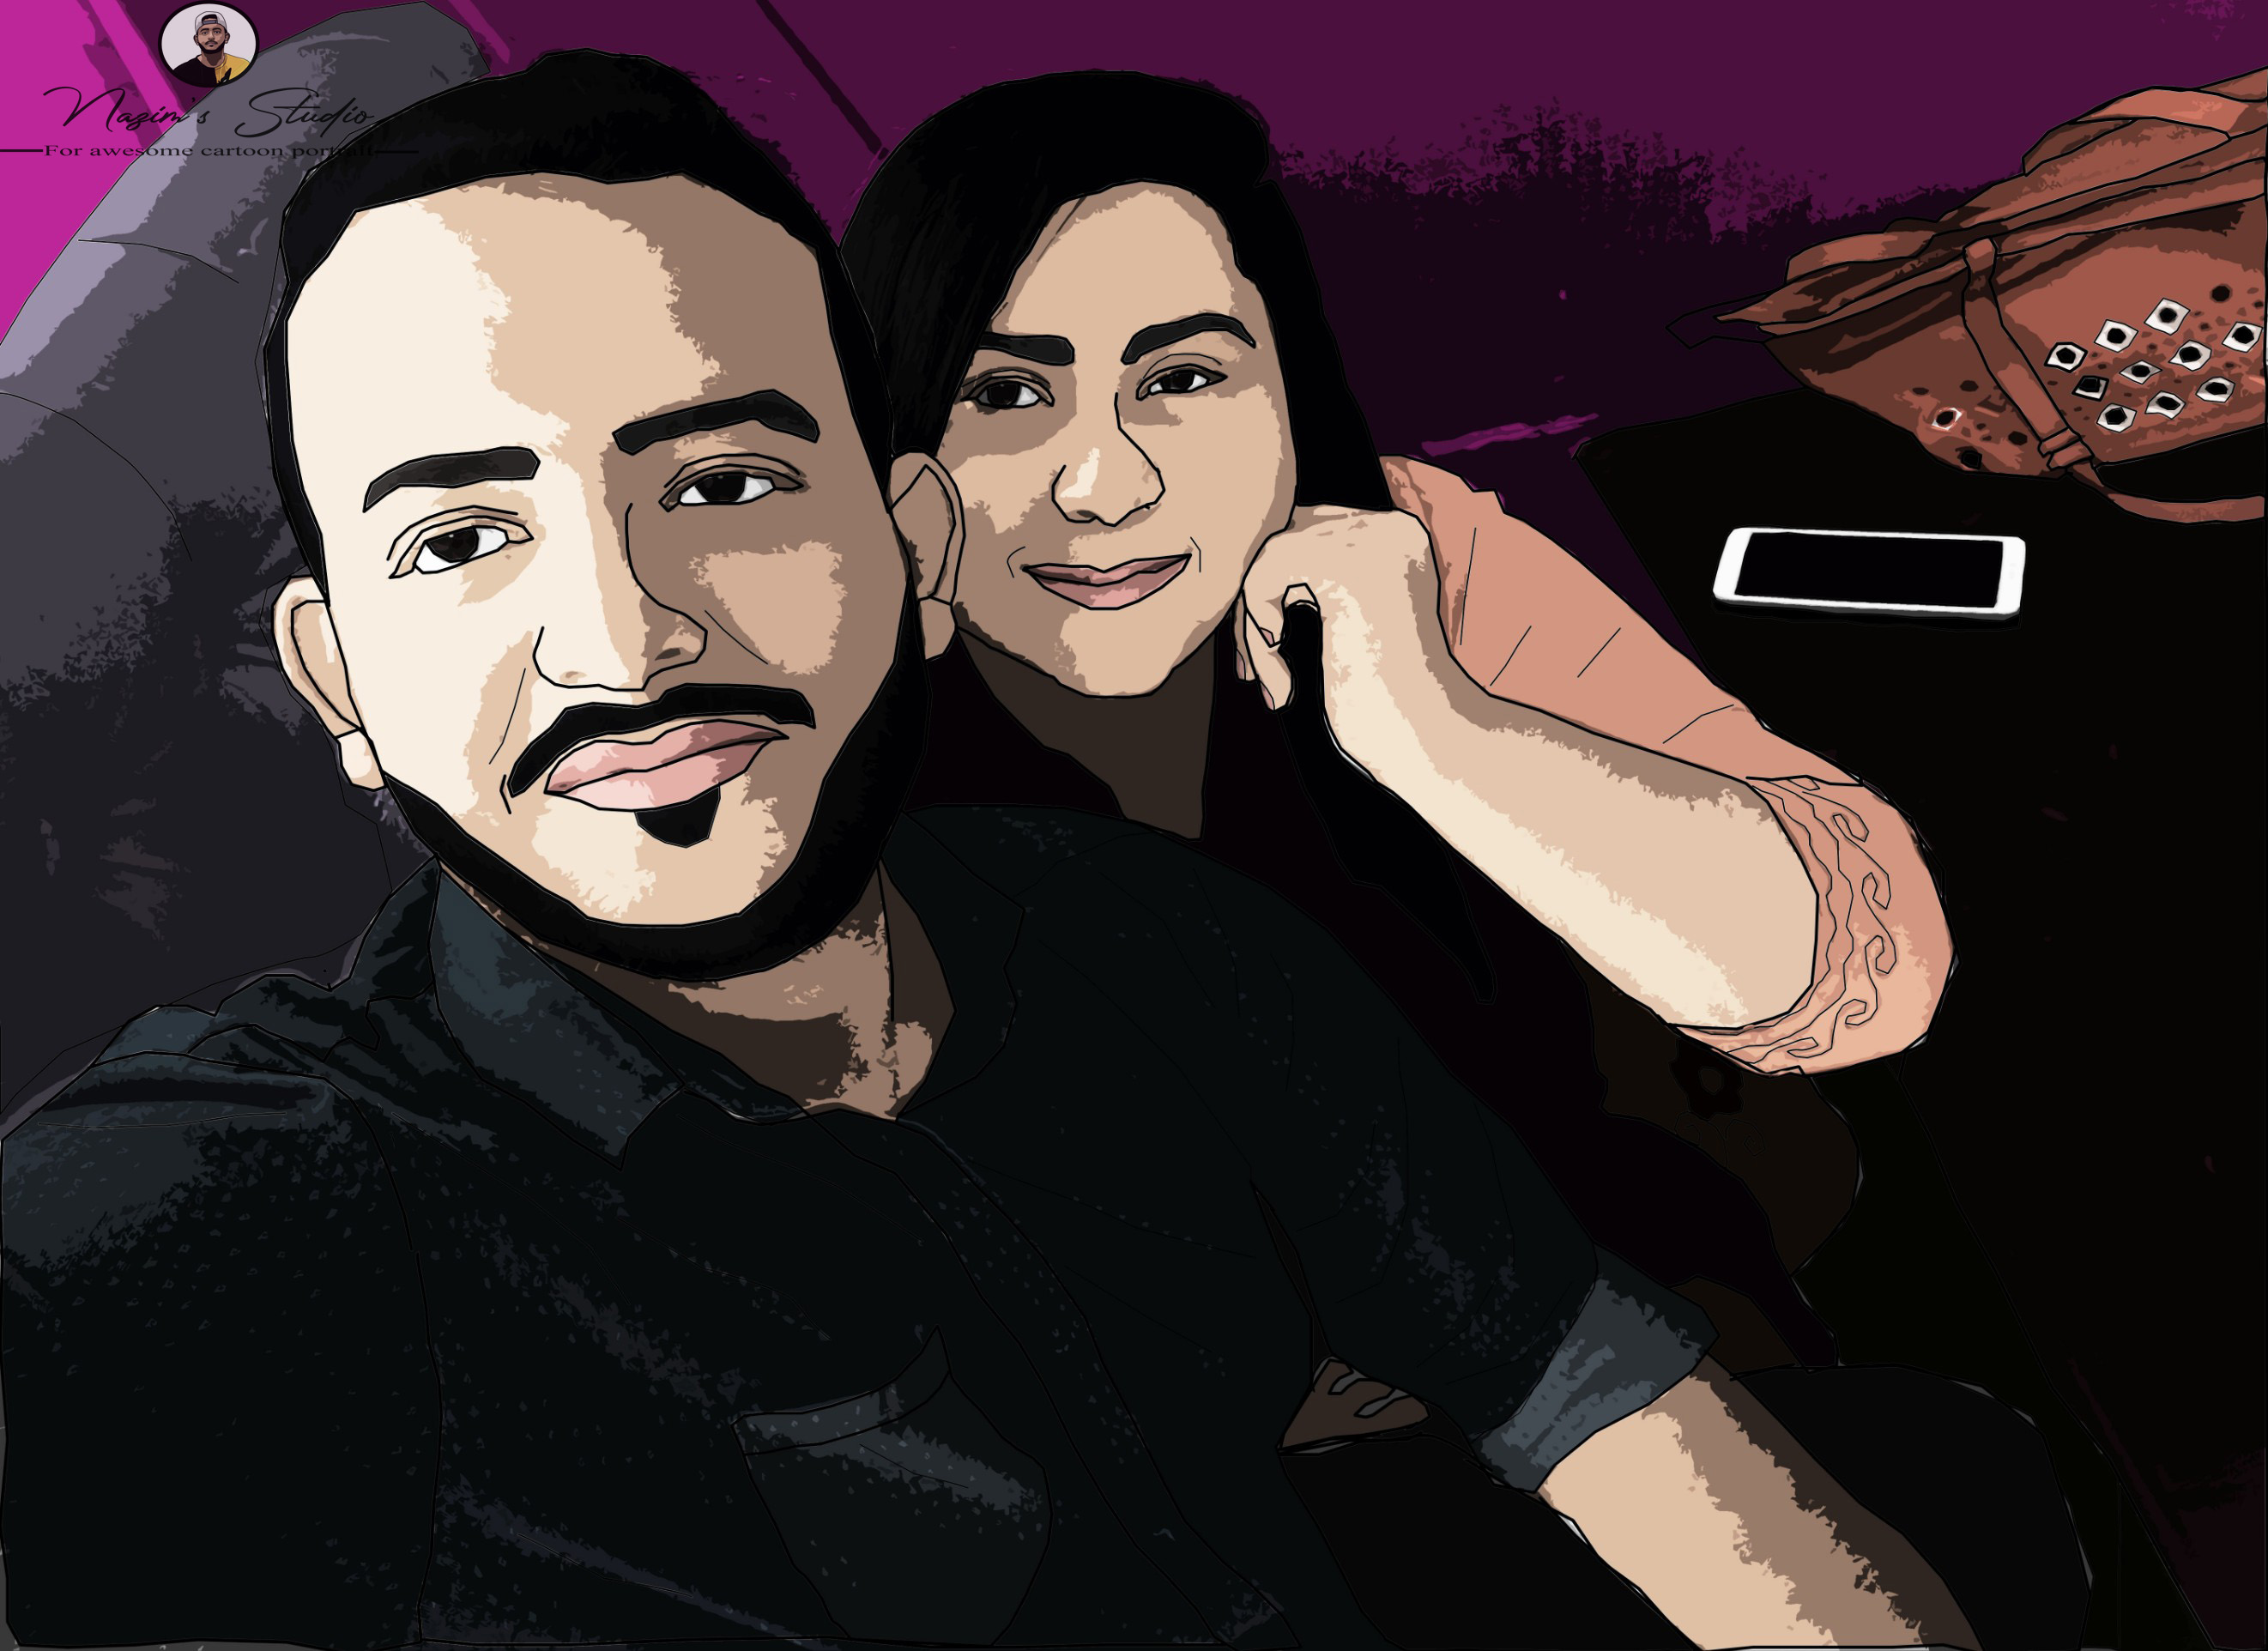 I will create your image into an awesome cartoon portrait